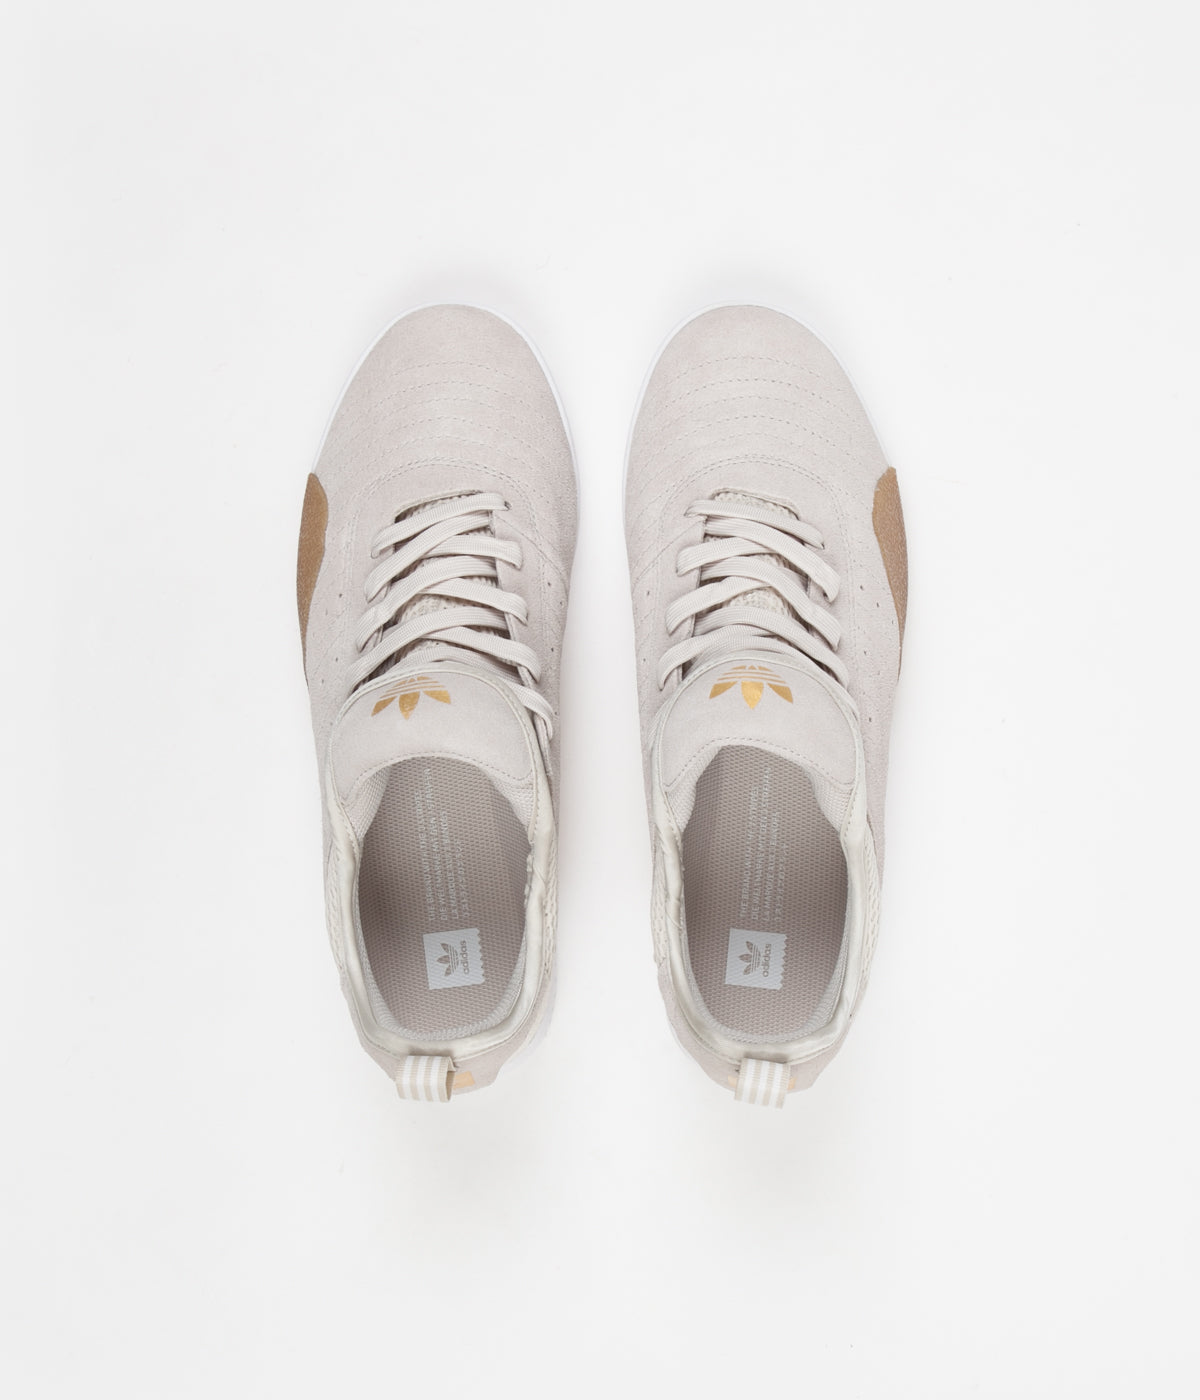 Adidas 3ST.003 Shoes - Clear Brown / White / Gum4